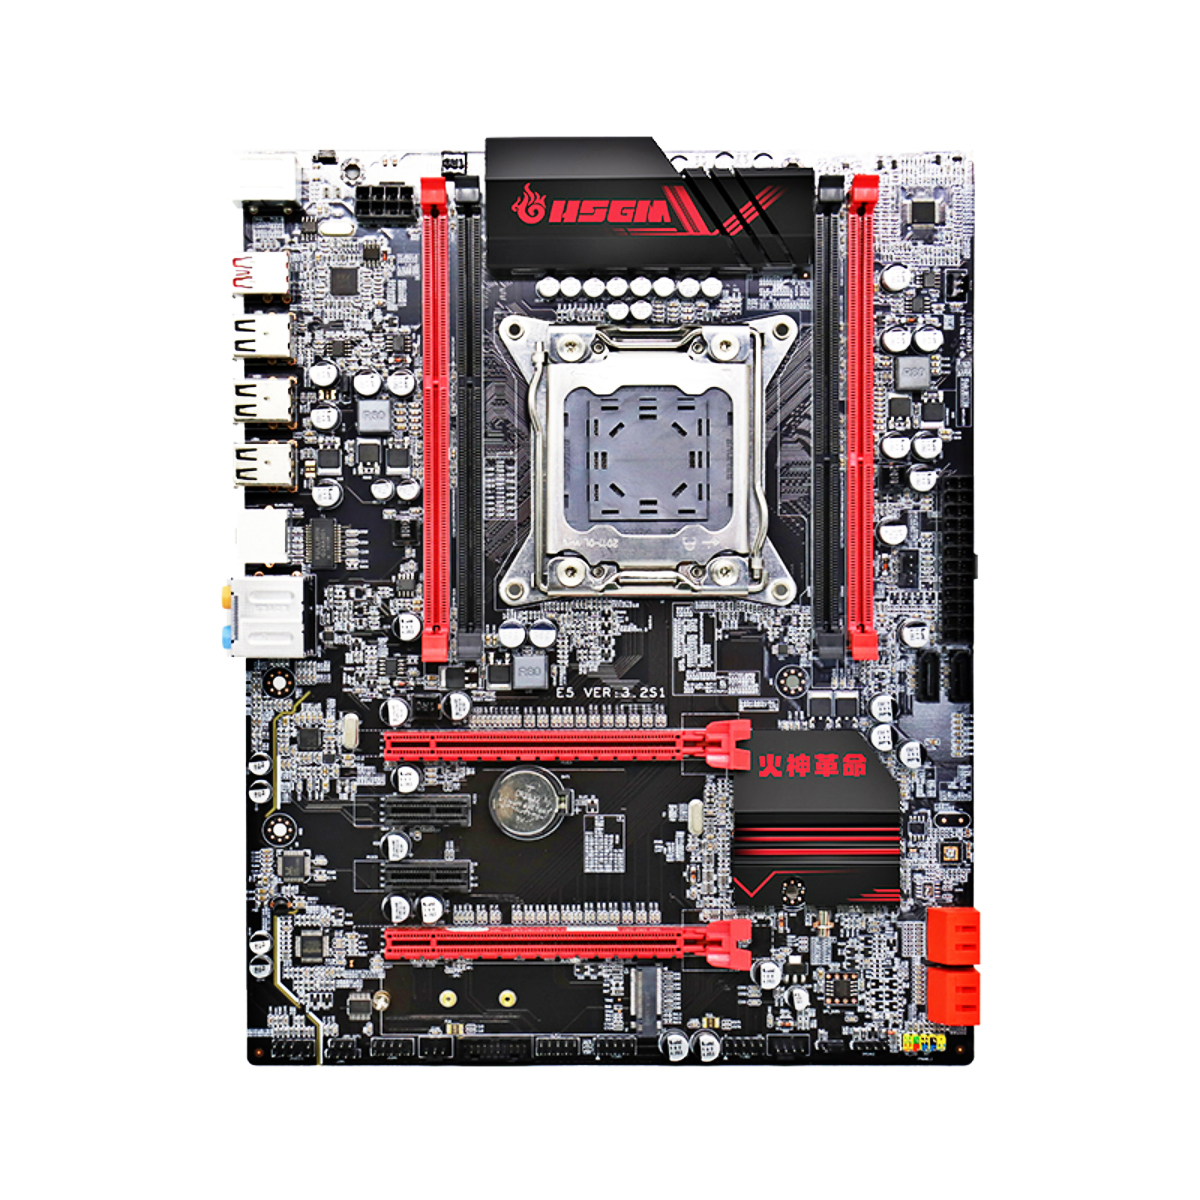 X79 Motherboard LGA2011 CPU ATX <font><b>USB3</b></font> SATA3 Kit <font><b>PCI</b></font>-E NVME M.2 SSD Support DDR3 REG ECC Rams and Xeon E5 Core Processor Mainboard image